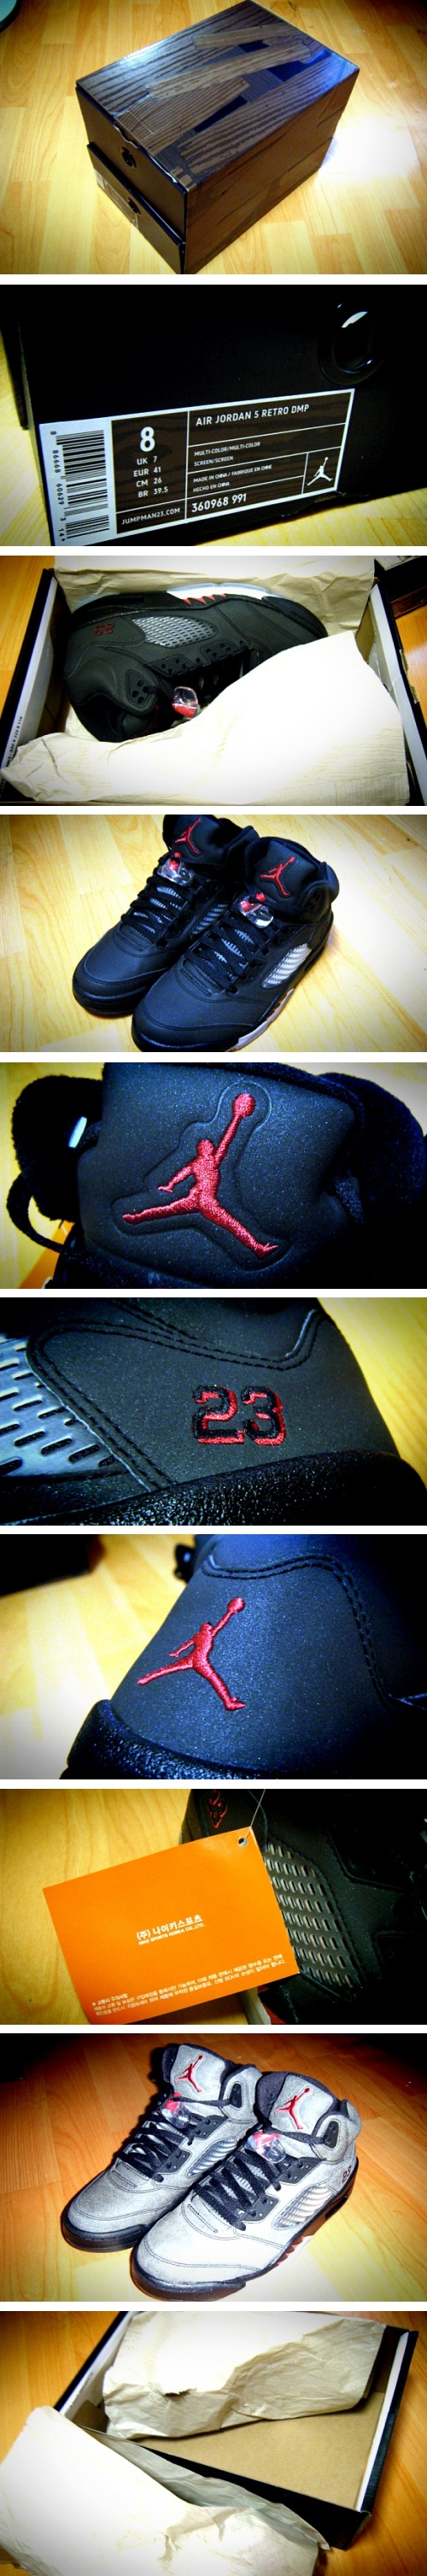 Air Jordan 5 Retro DMP2 ″Raging Bulls Package″ + 캠핑 현장